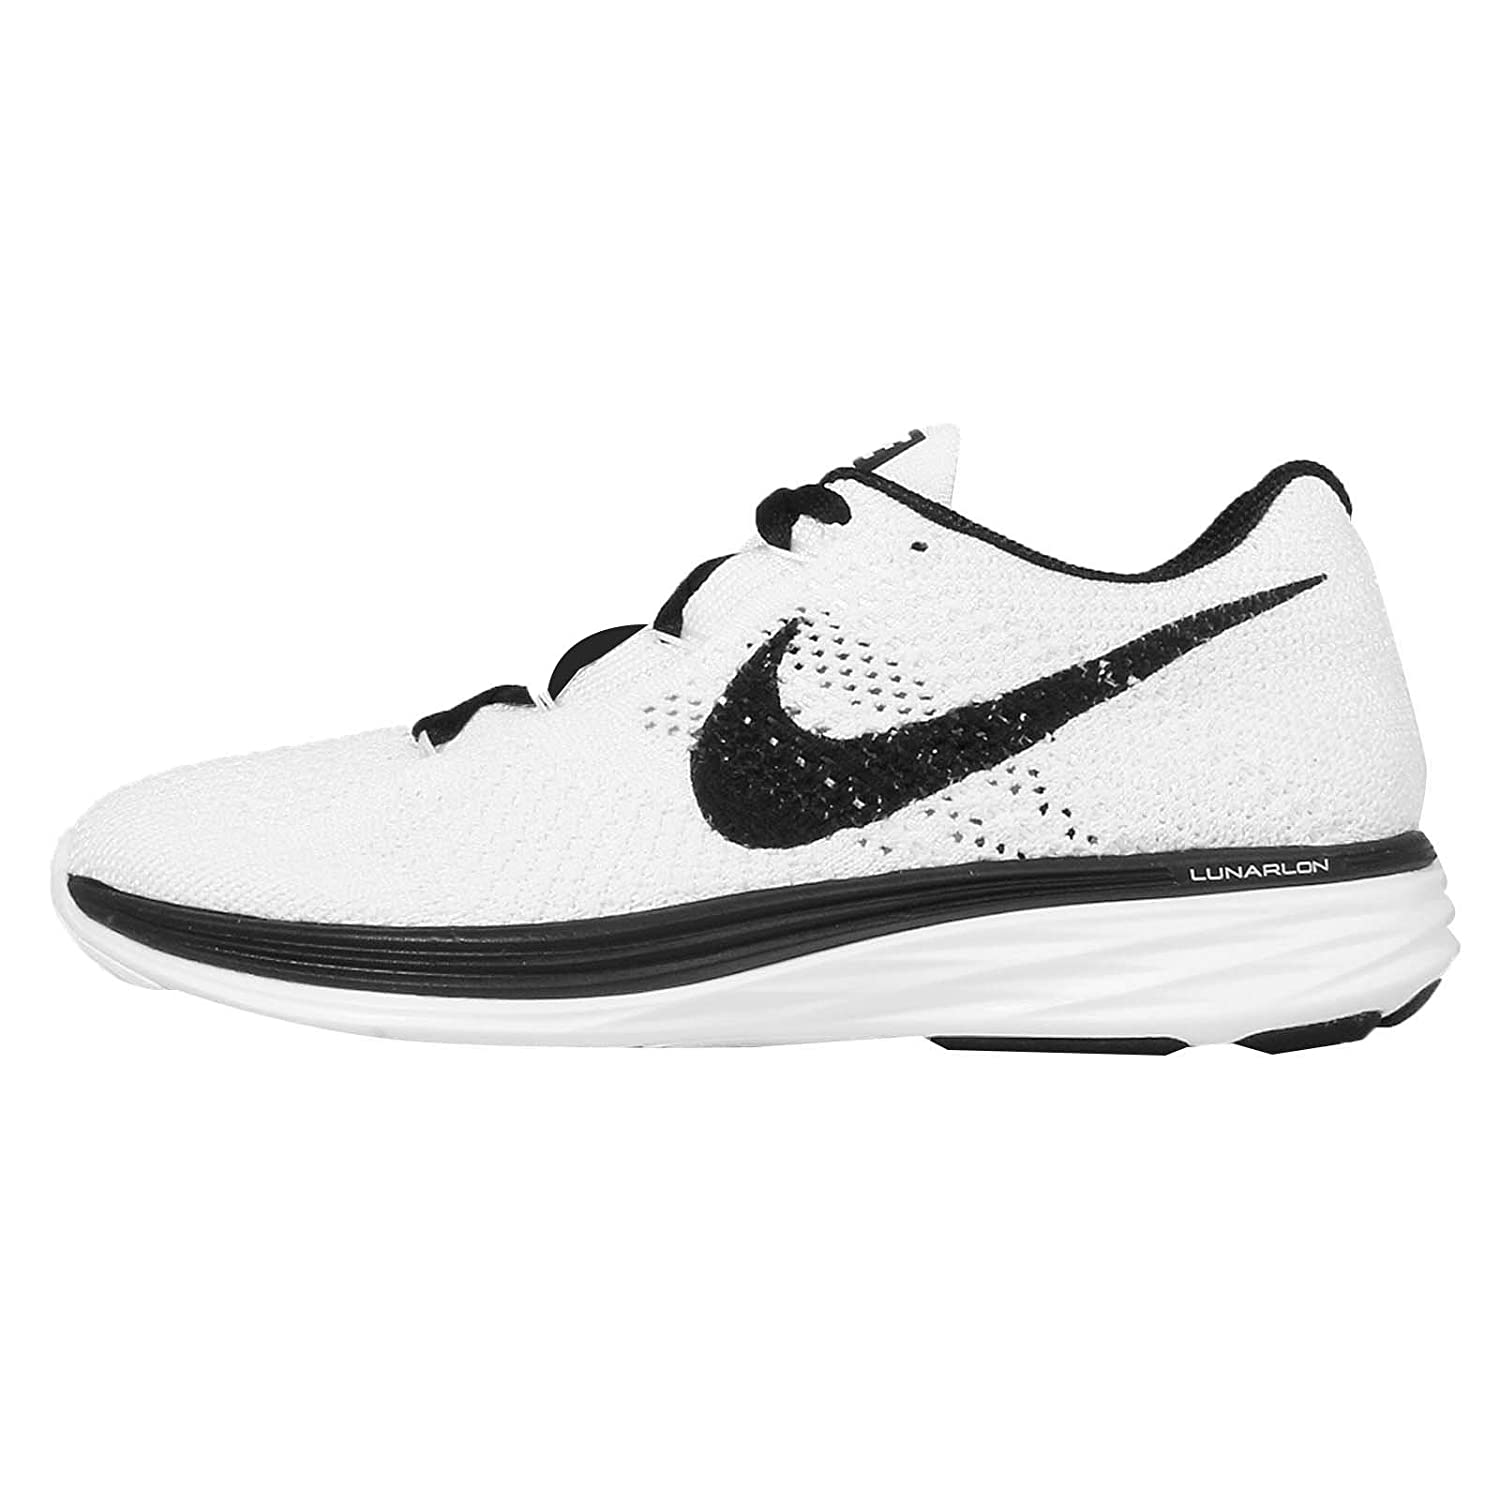 san francisco 638cd ece71 nike womens flyknit lunar3 trainers 698182 sneakers shoes (US 6. 5, sail  black 101) Buy Online at Low Prices in India - Amazon.in